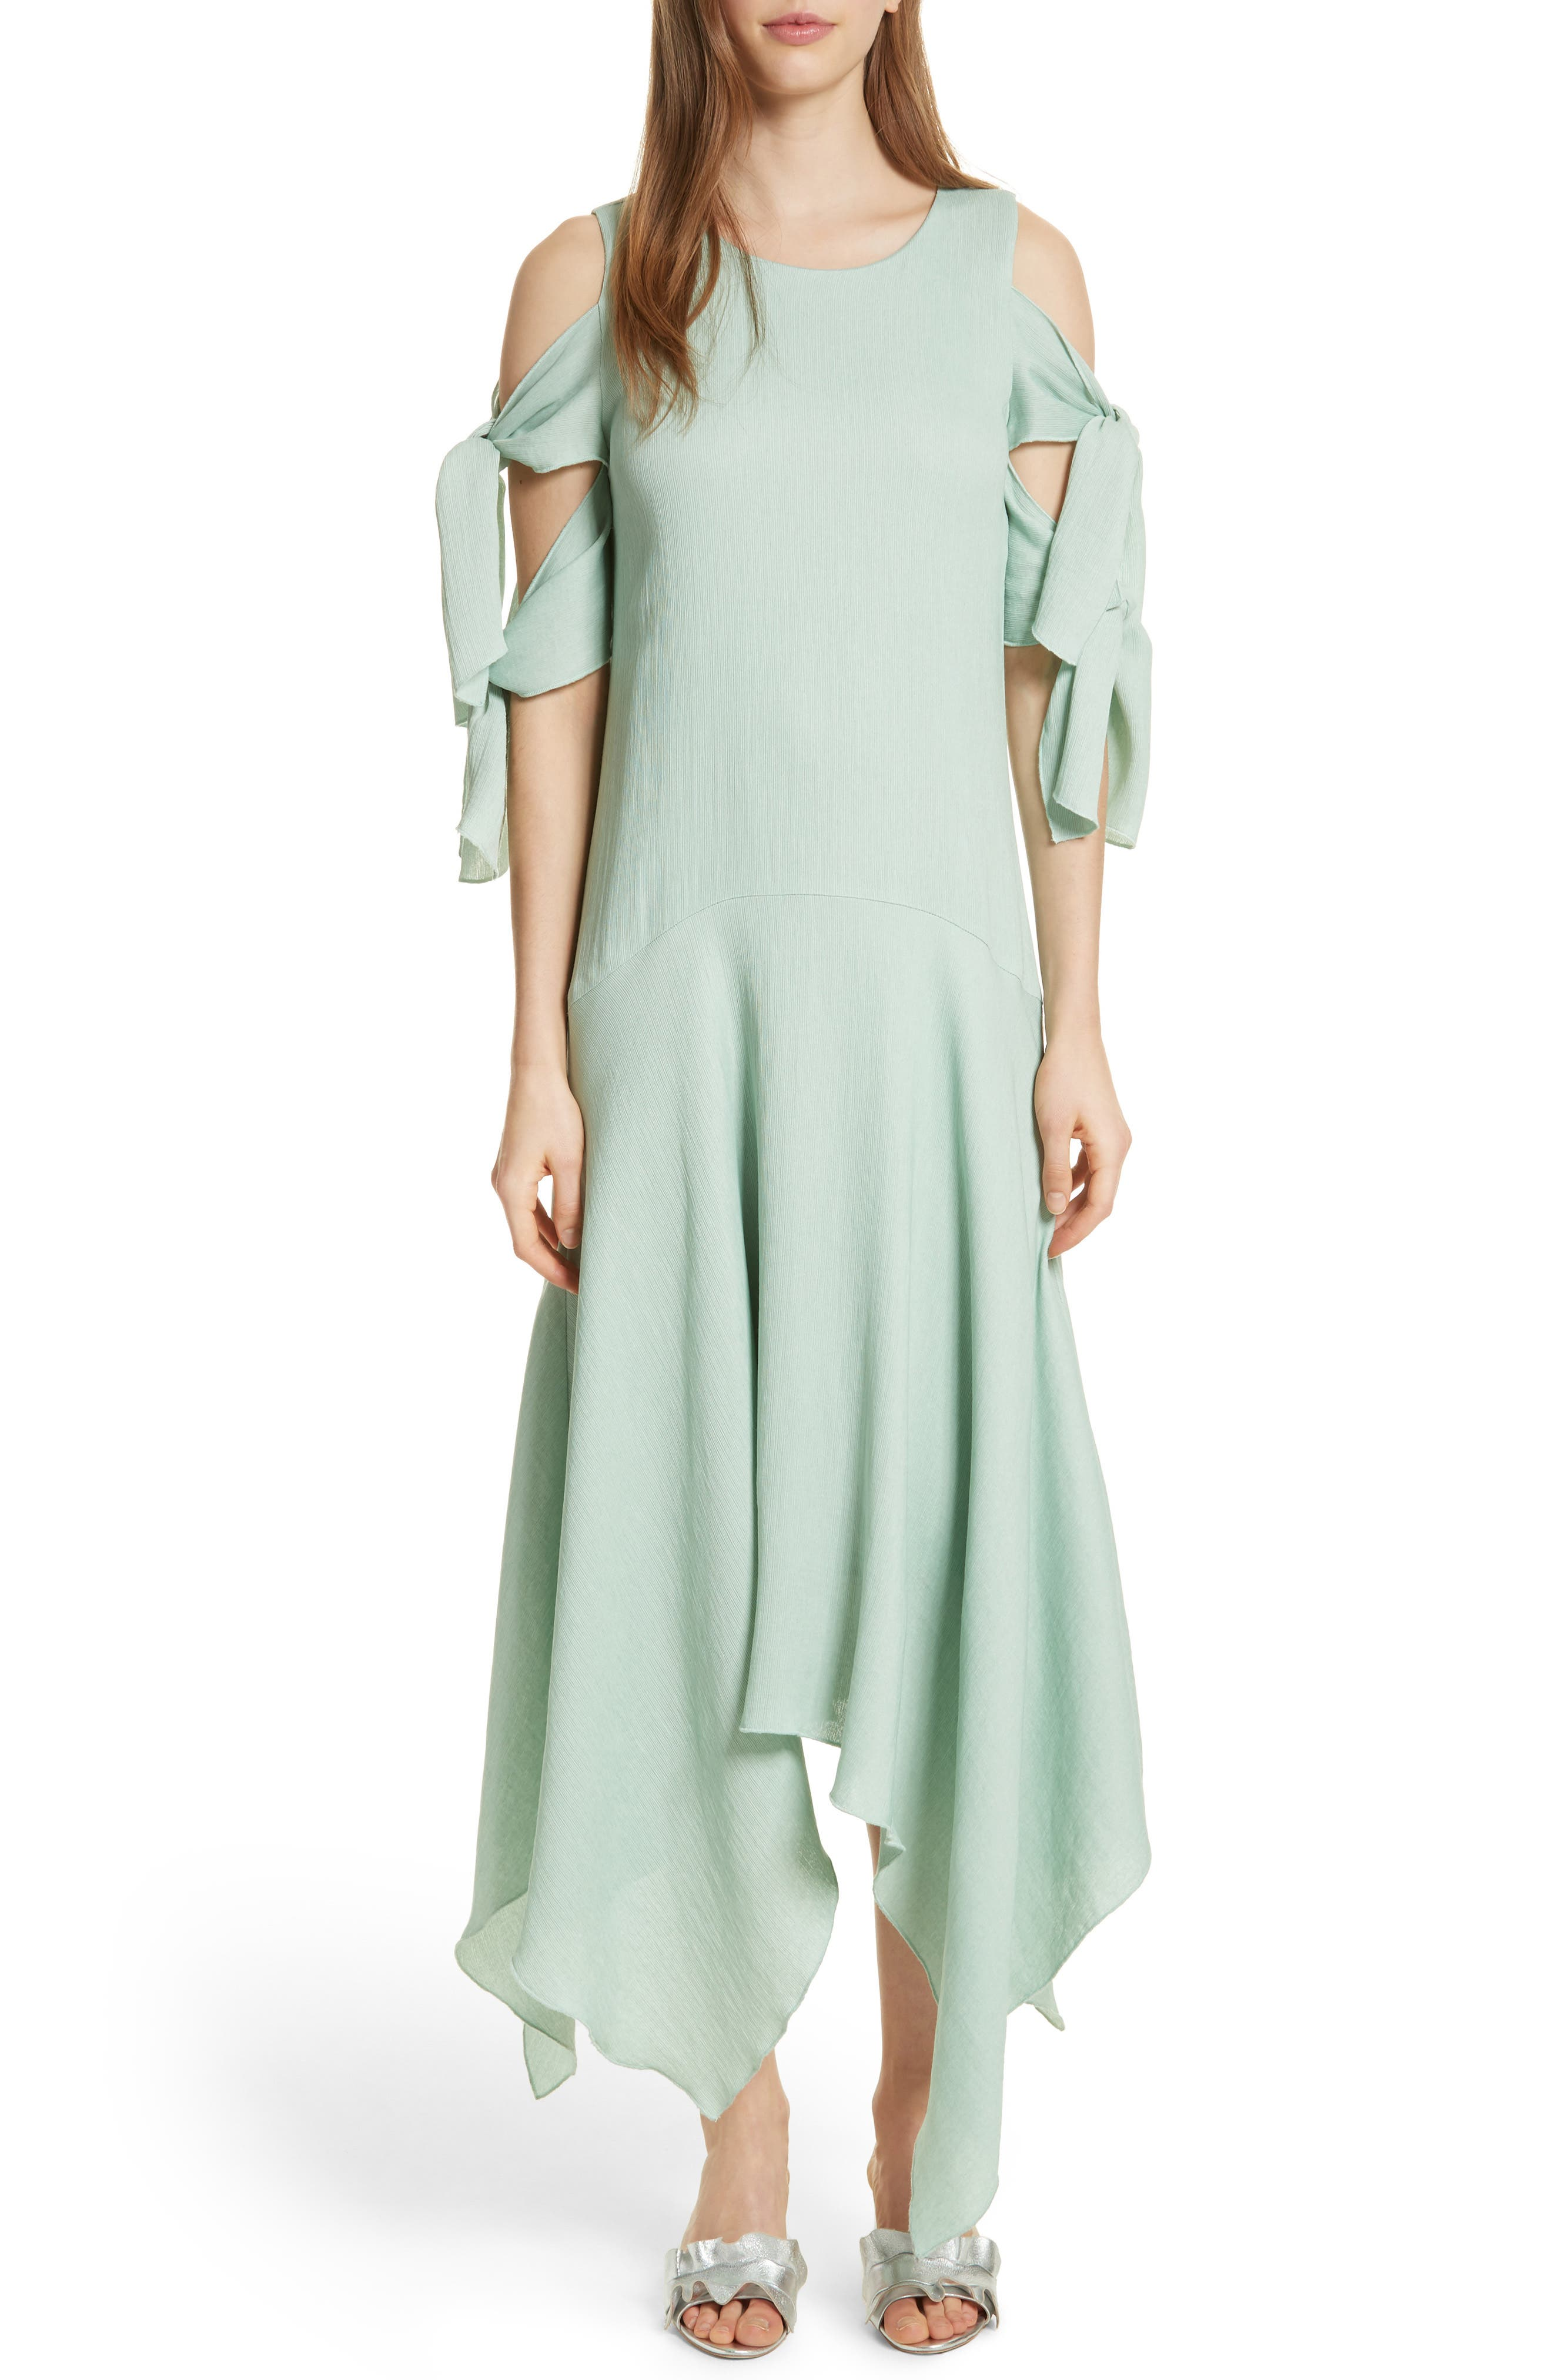 Prose & Poetry Vivianna Drop Waist Midi Dress,                             Main thumbnail 1, color,                             Aqua Foam